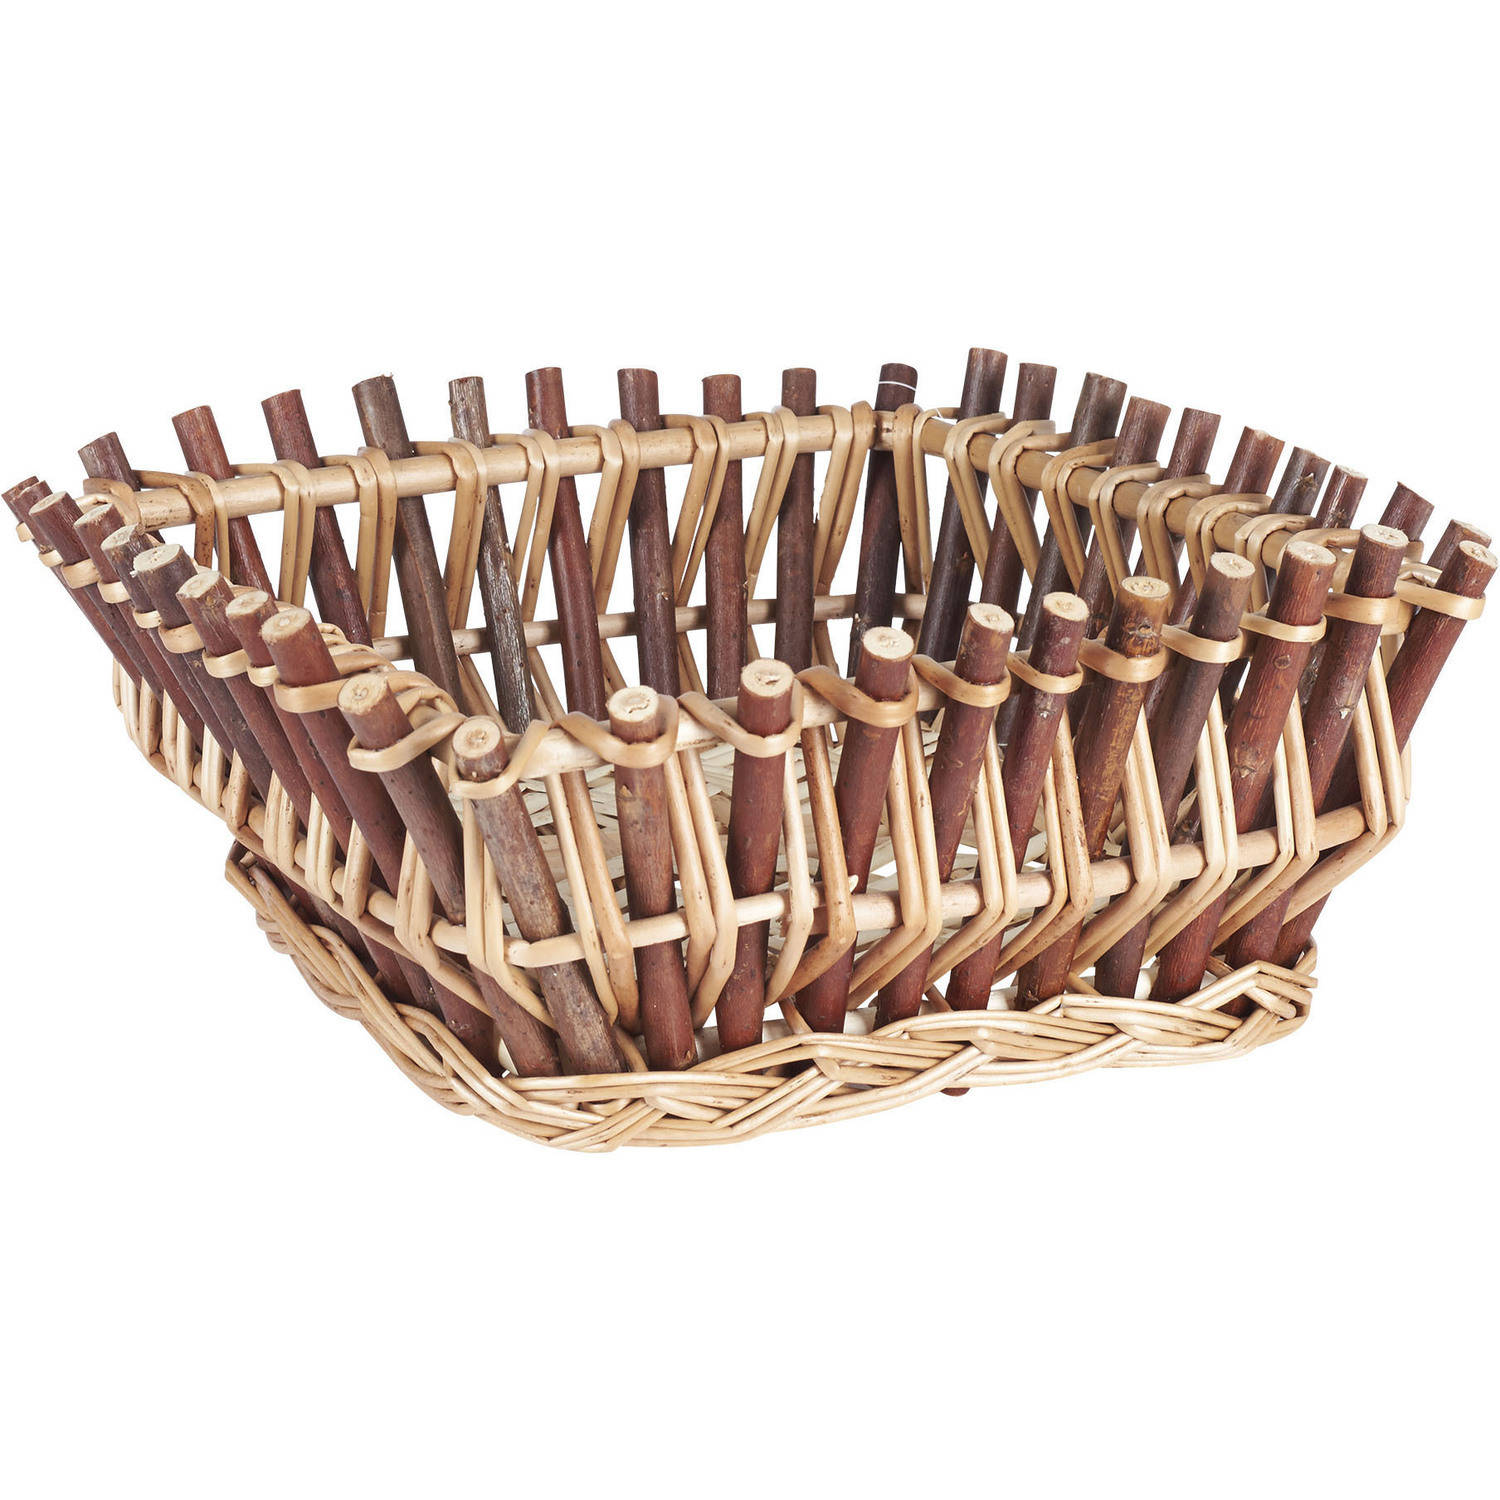 Household Essentials Square Wood Stick Basket